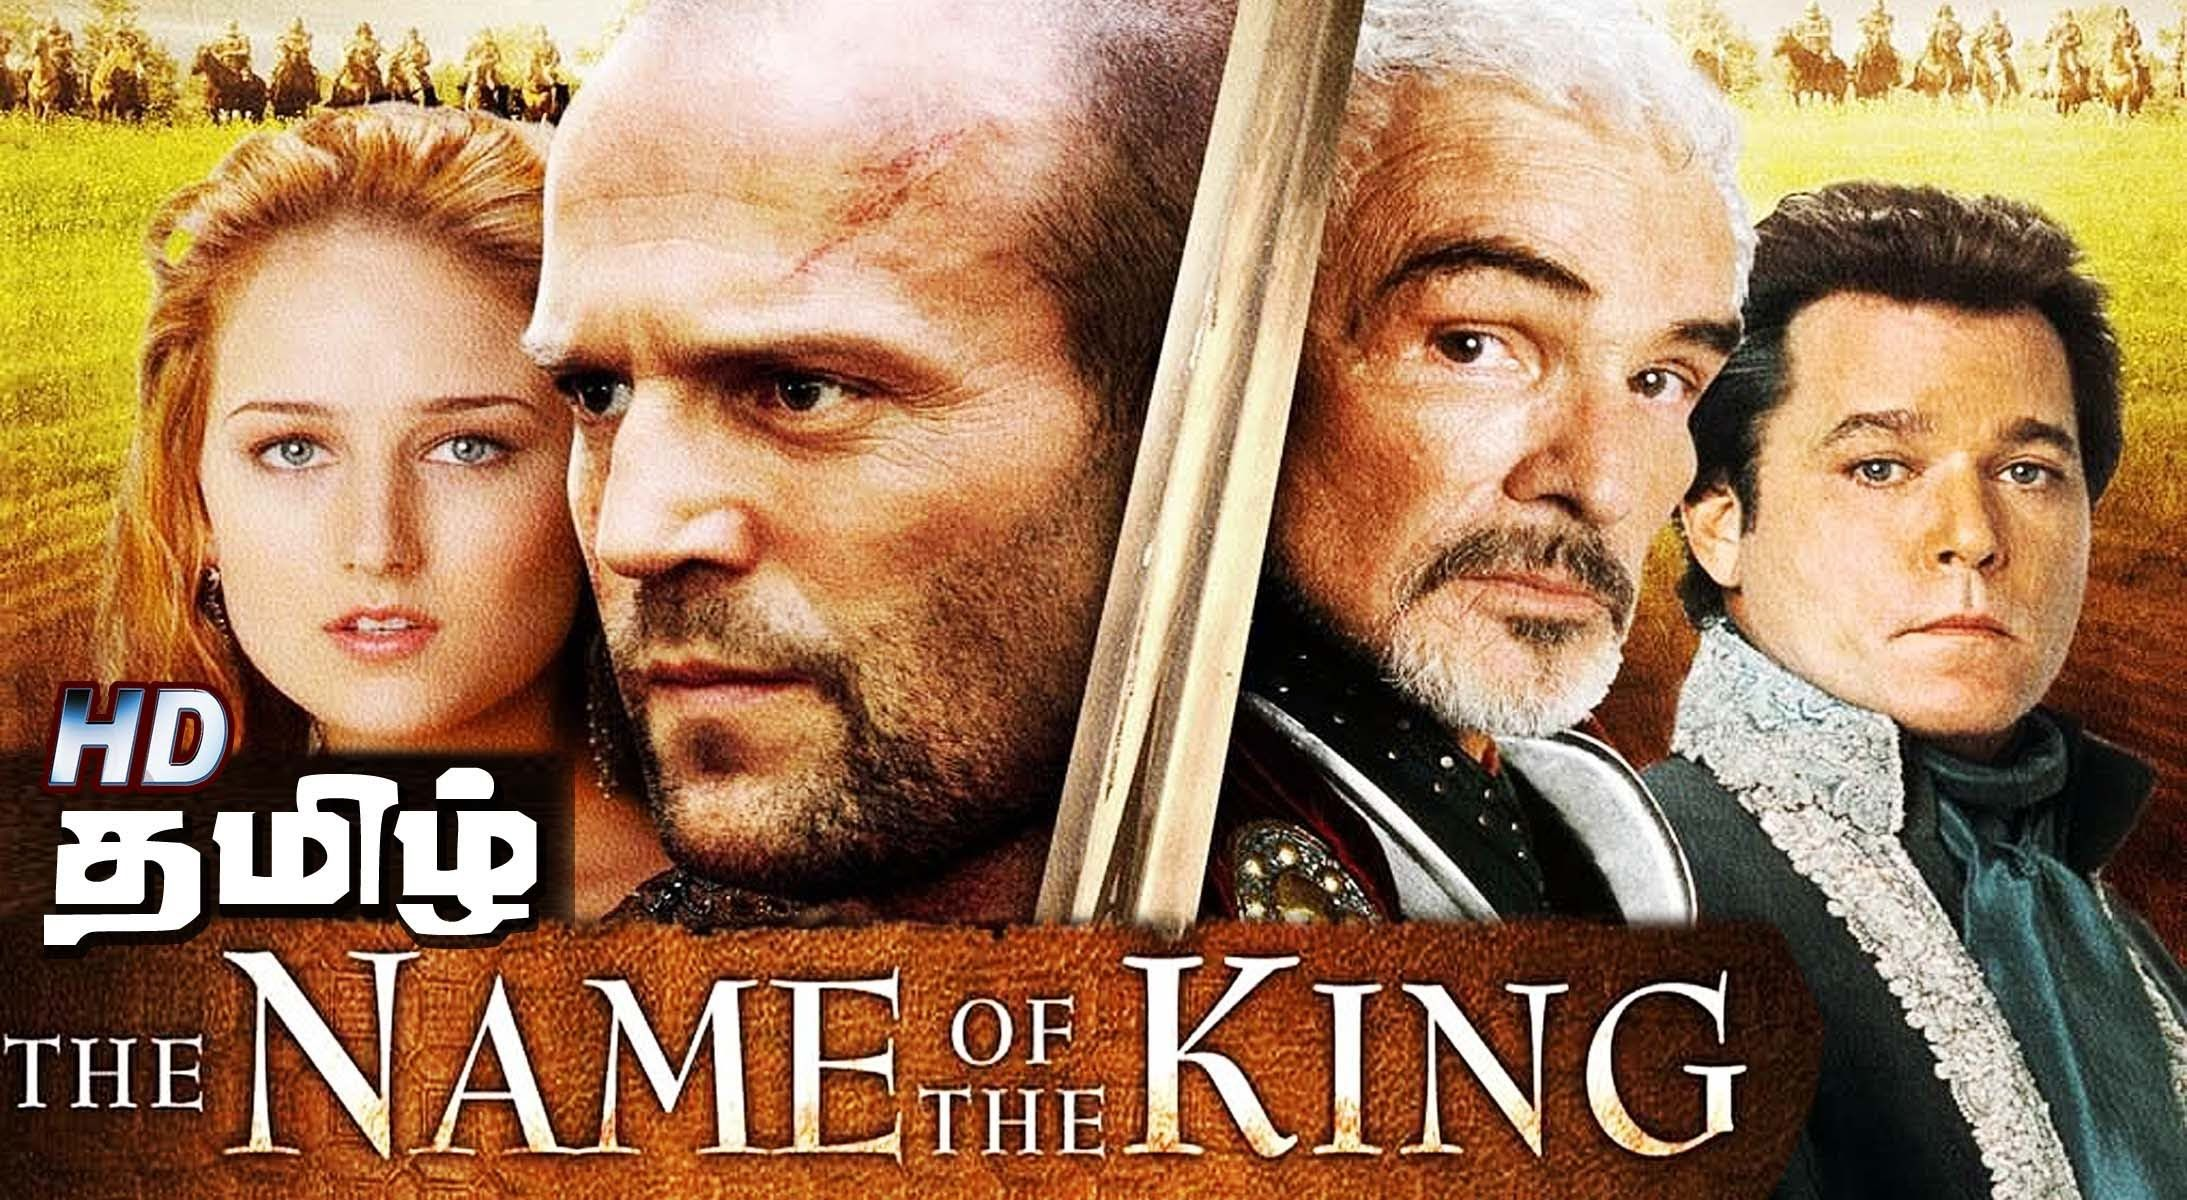 IN THE NAME OF THE KING Tamil Dubbed Hollywood Movie   Bell